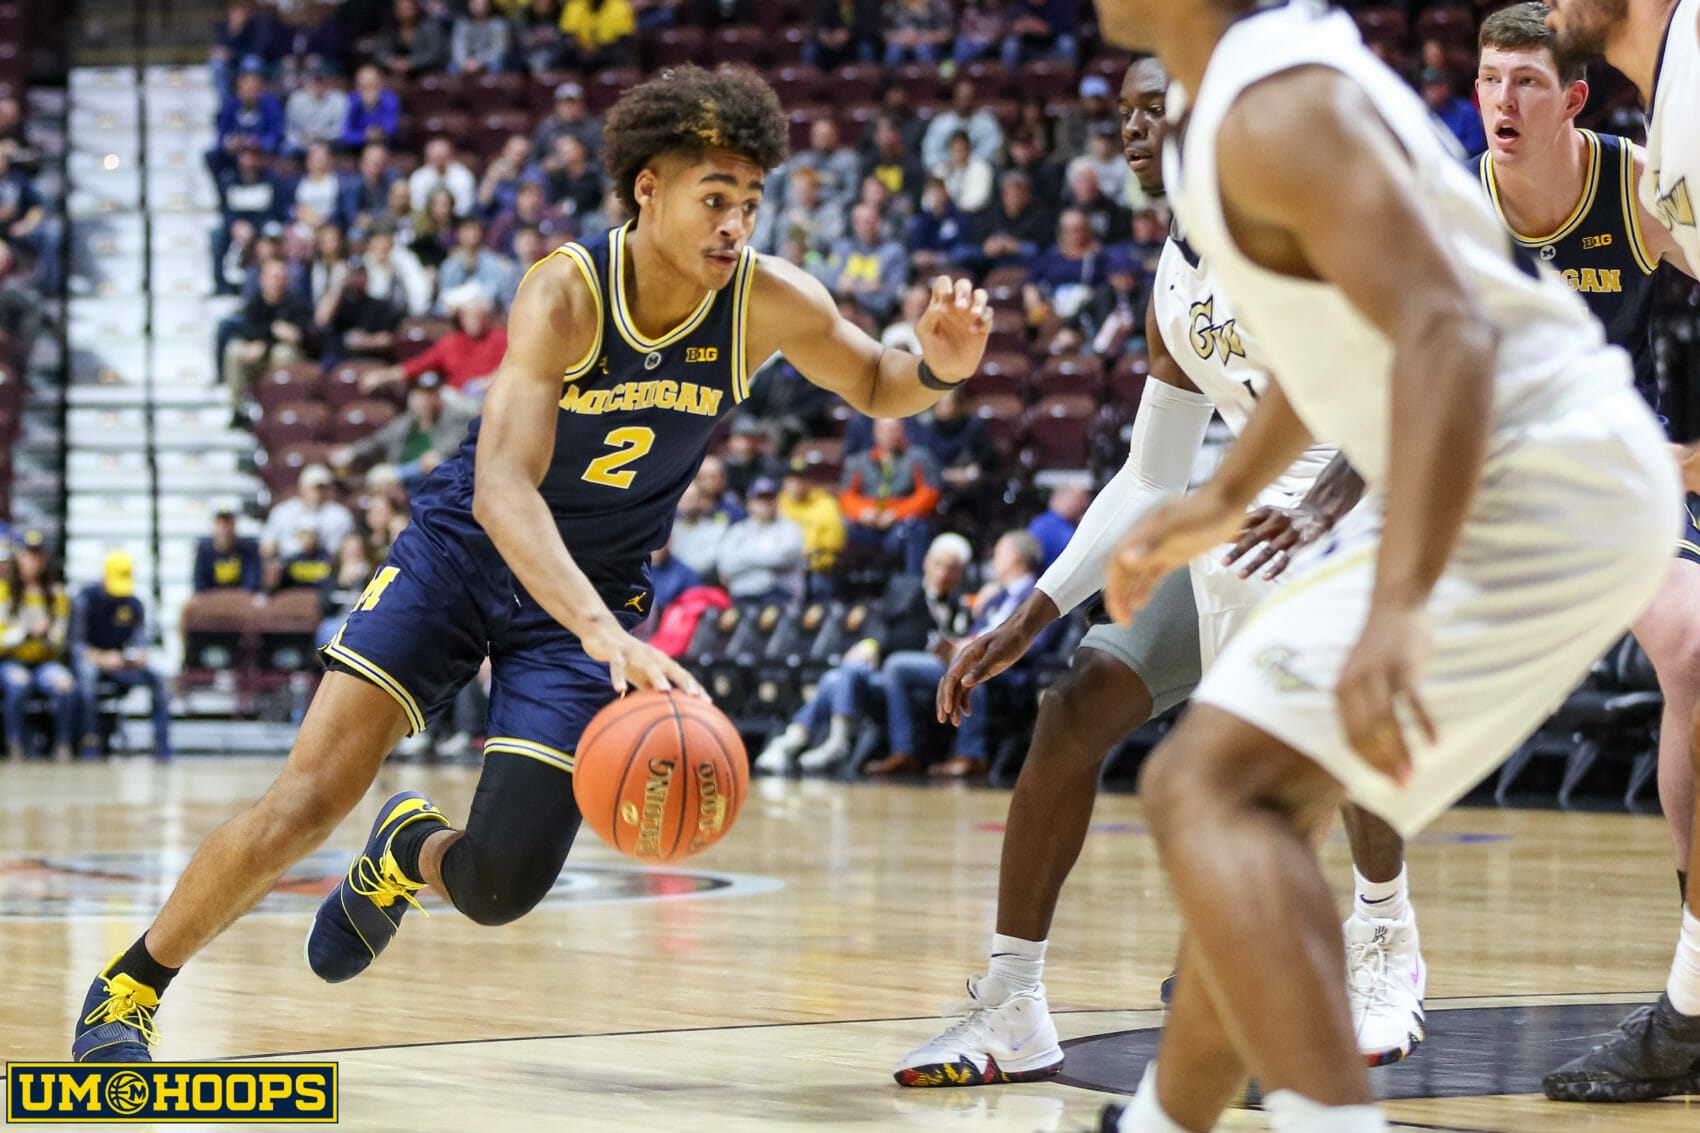 Michigan 84, George Washington 61-11